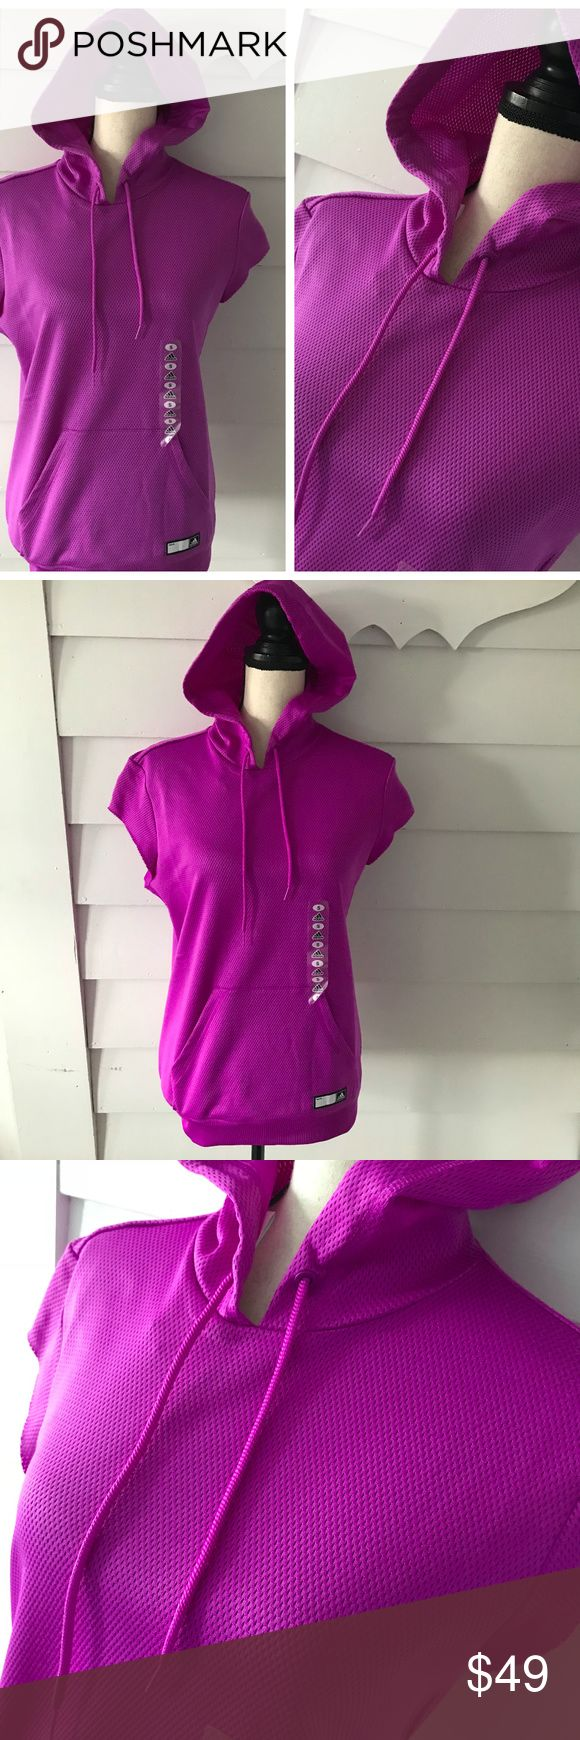 "NEW Adidas HOODIE Small PURPLE Mesh Pullover Tank Adidas Hoodie Bright Purple Pullover Hoodie  Mesh, Pouch Front Pocket  Womens Size Small, New w/ Tags  Cutoff Sleeves Sleeveless Style  Chest: 38"" Length: 25"" Adidas Tops Sweatshirts & Hoodies"